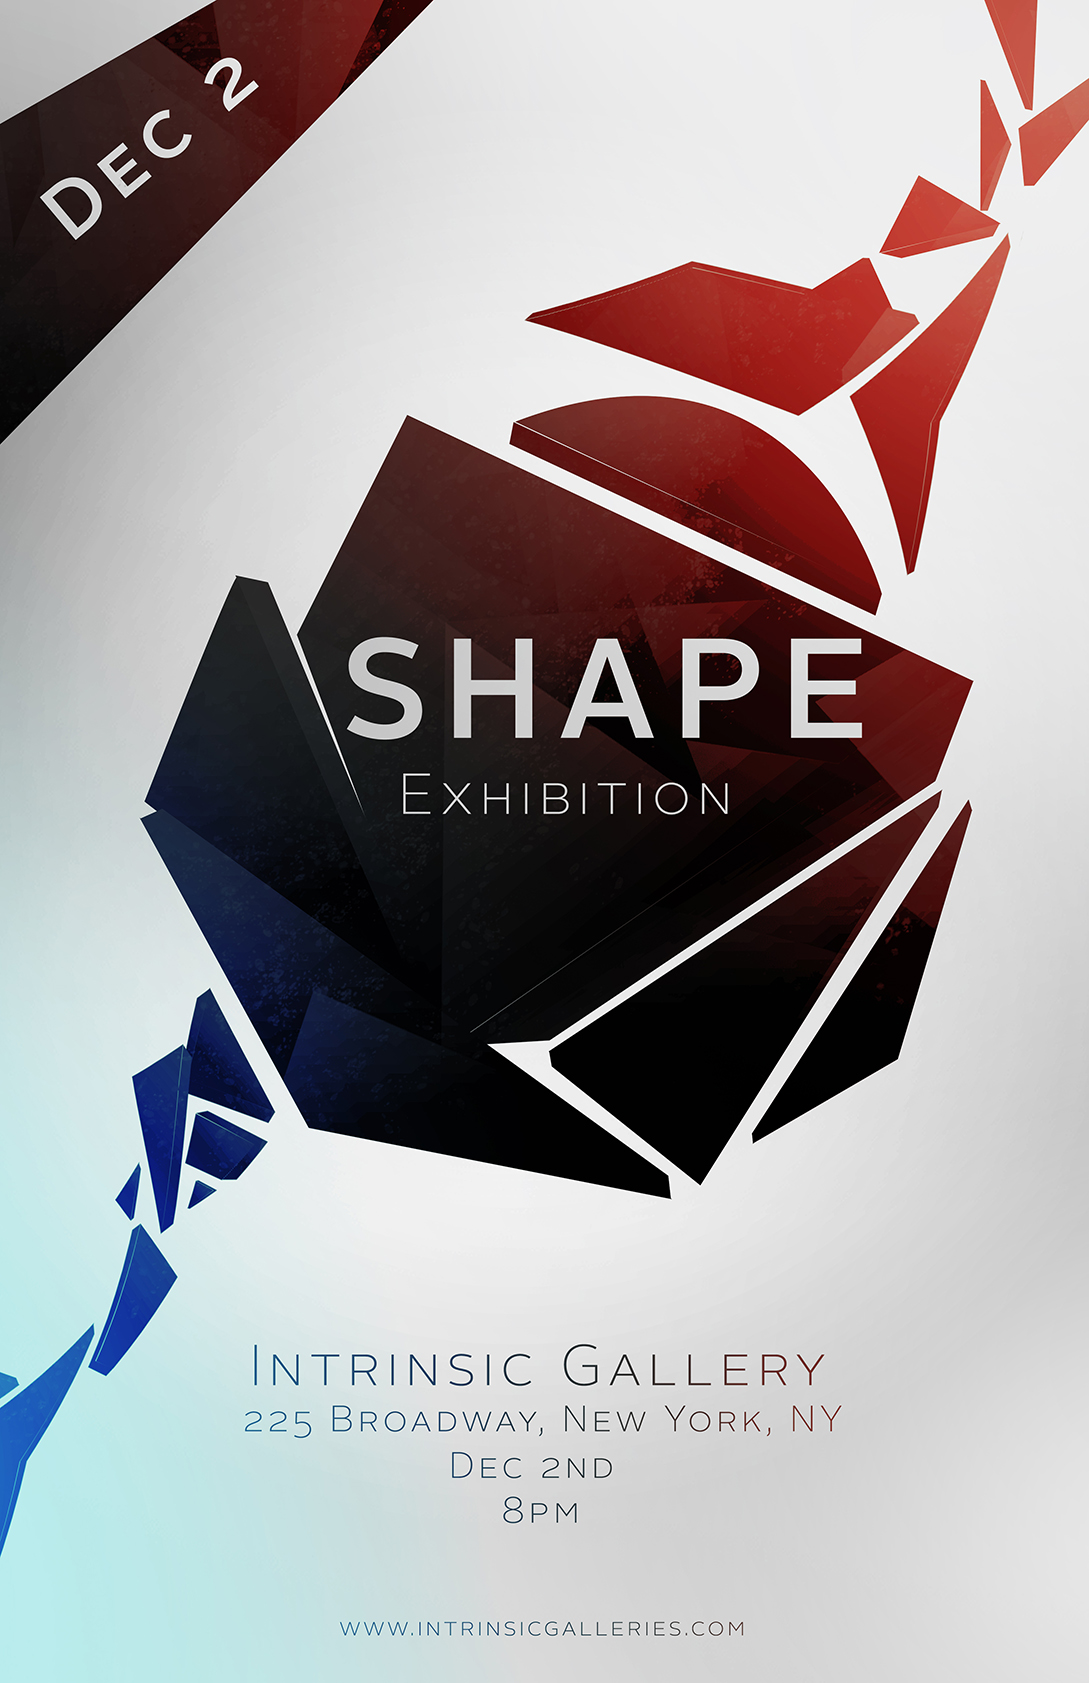 SCAD Poster Challenge Entry: Shape Exhibition